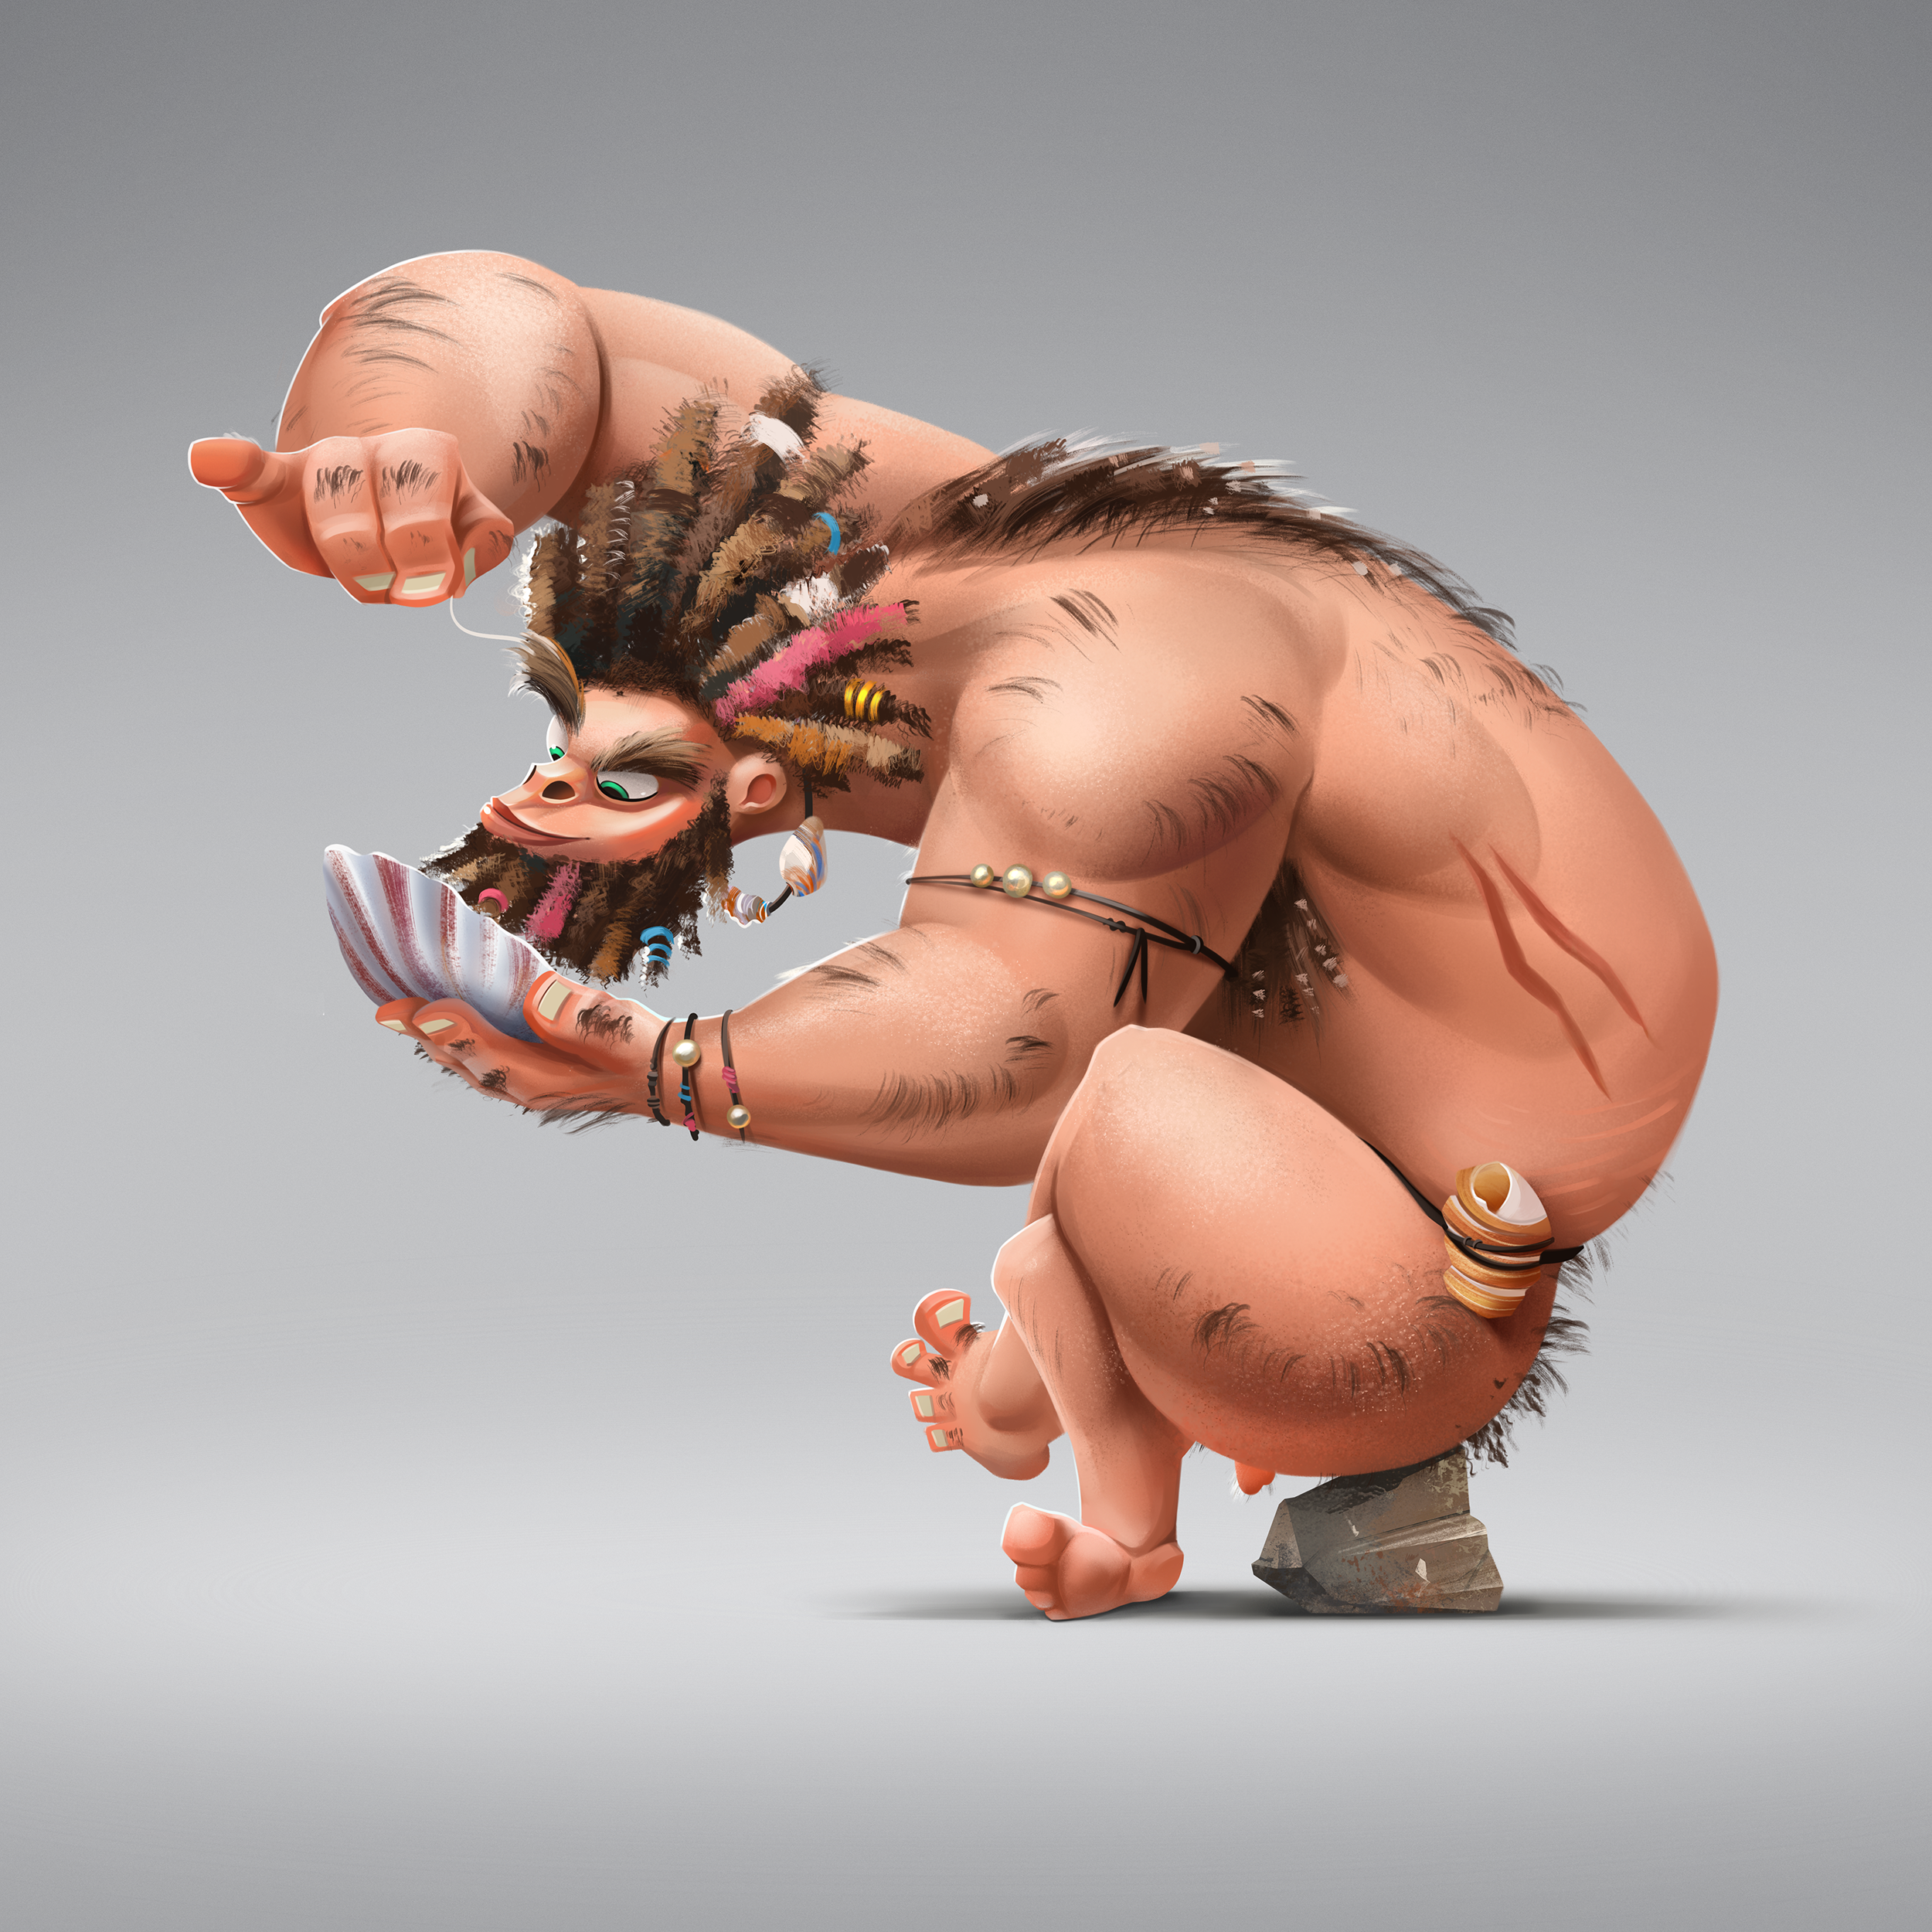 roland_budai_character_design_challenge_cavemen.png